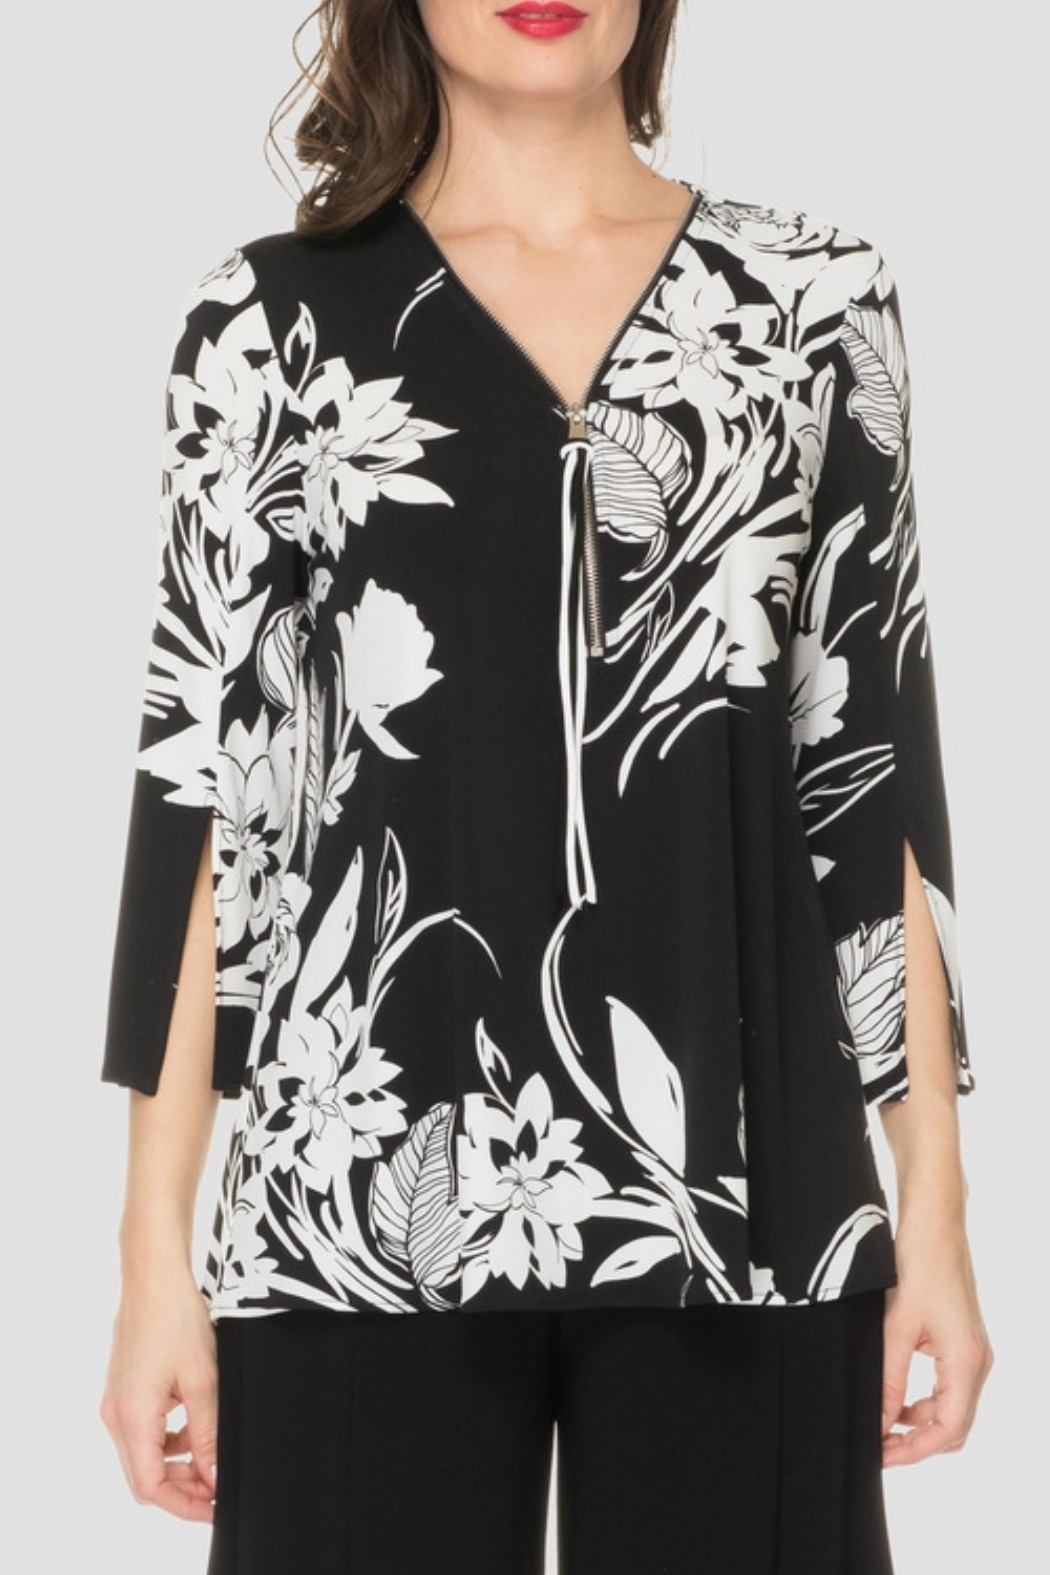 Joseph Ribkoff Black + White Floral Top - Front Cropped Image